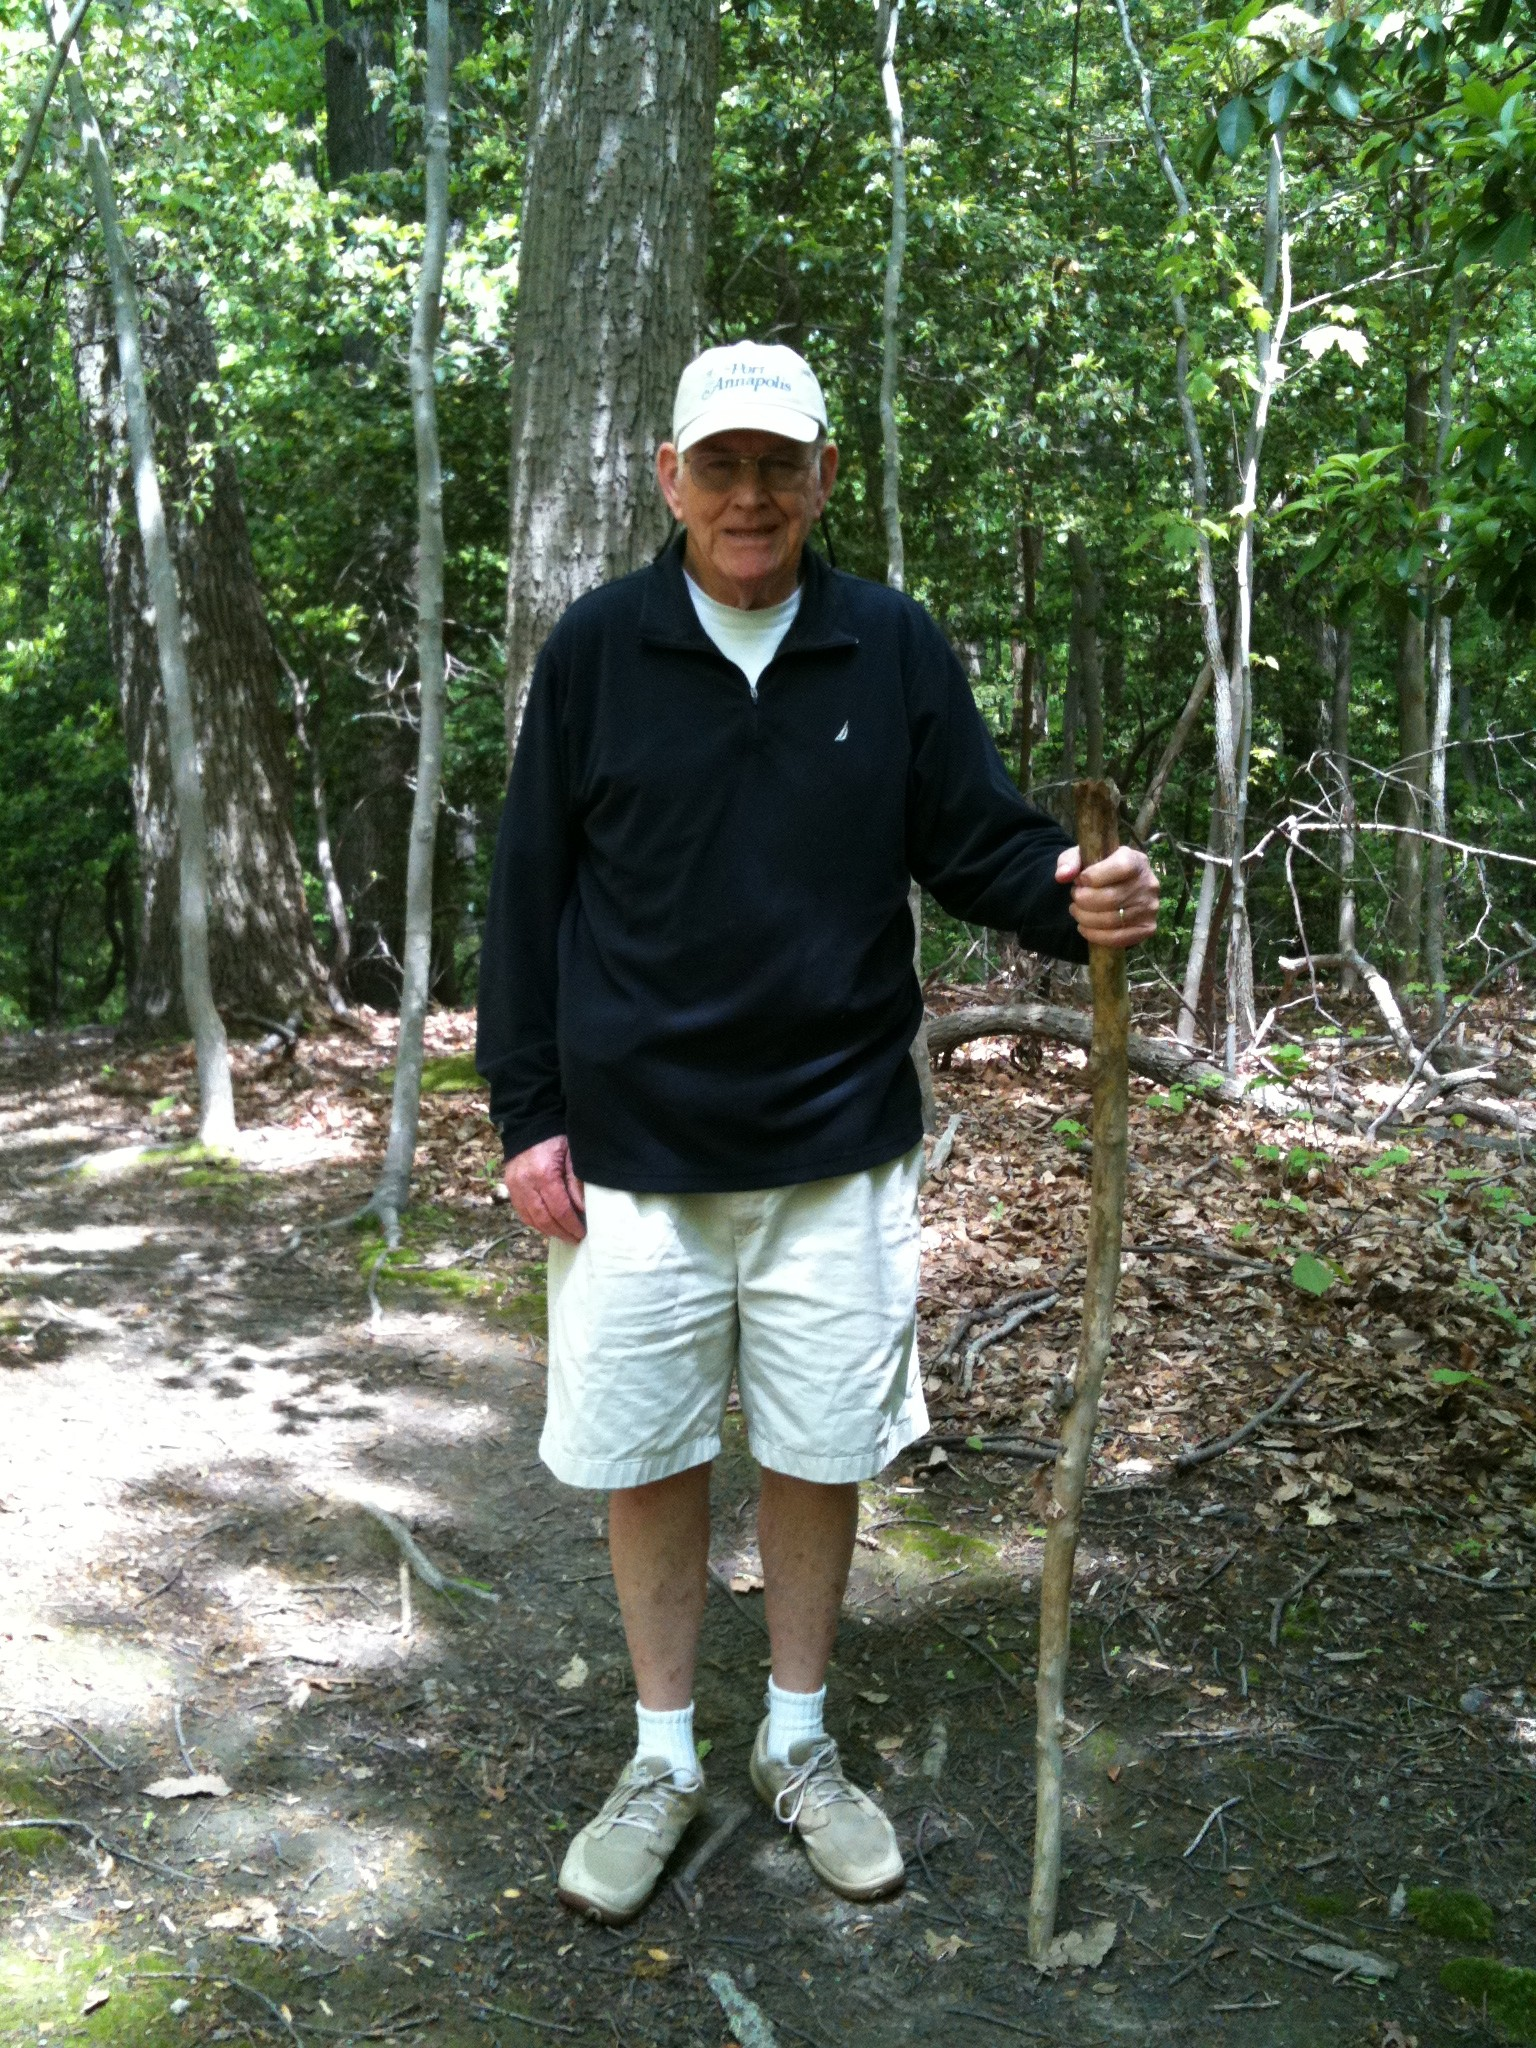 Bill on a hike